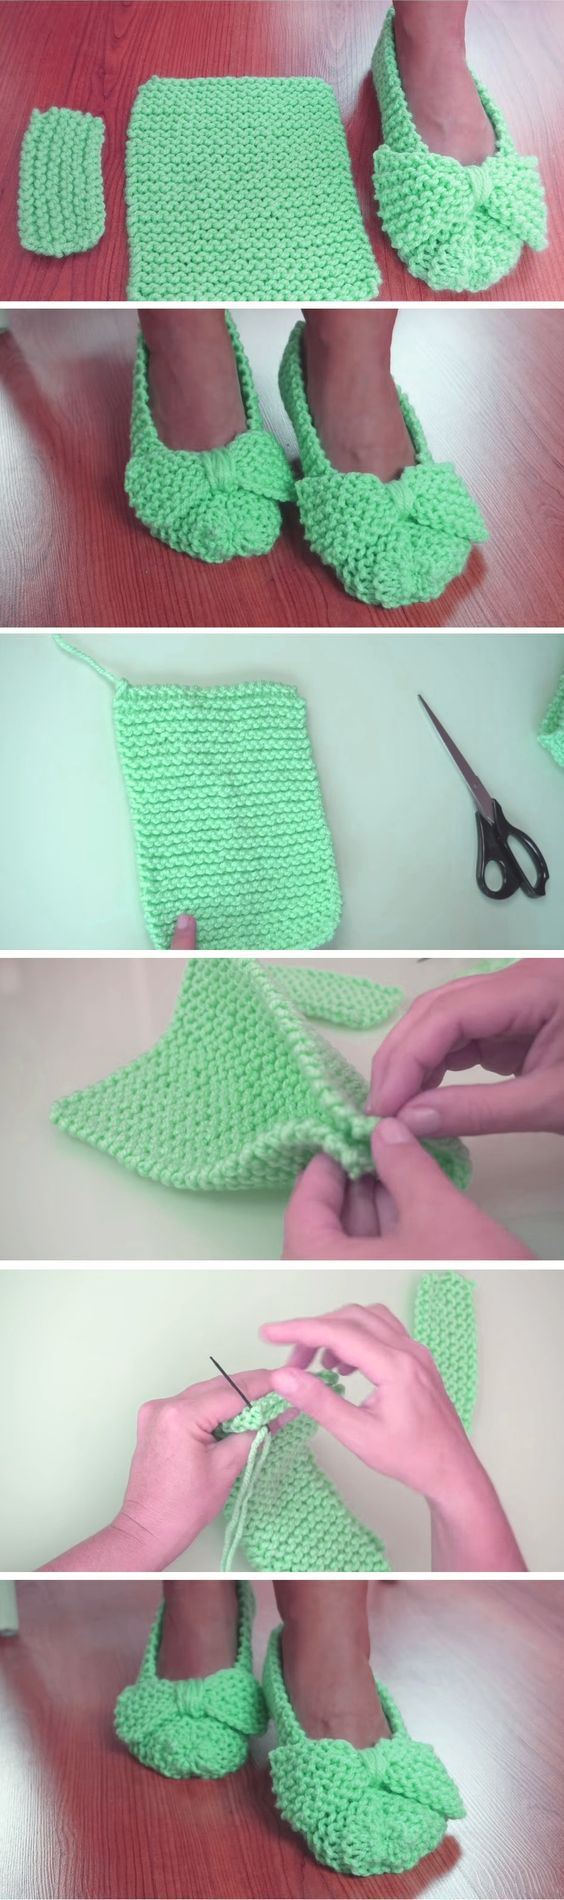 Photo of Easiest Slippers to Make – Crochet or Knit – Design Peak